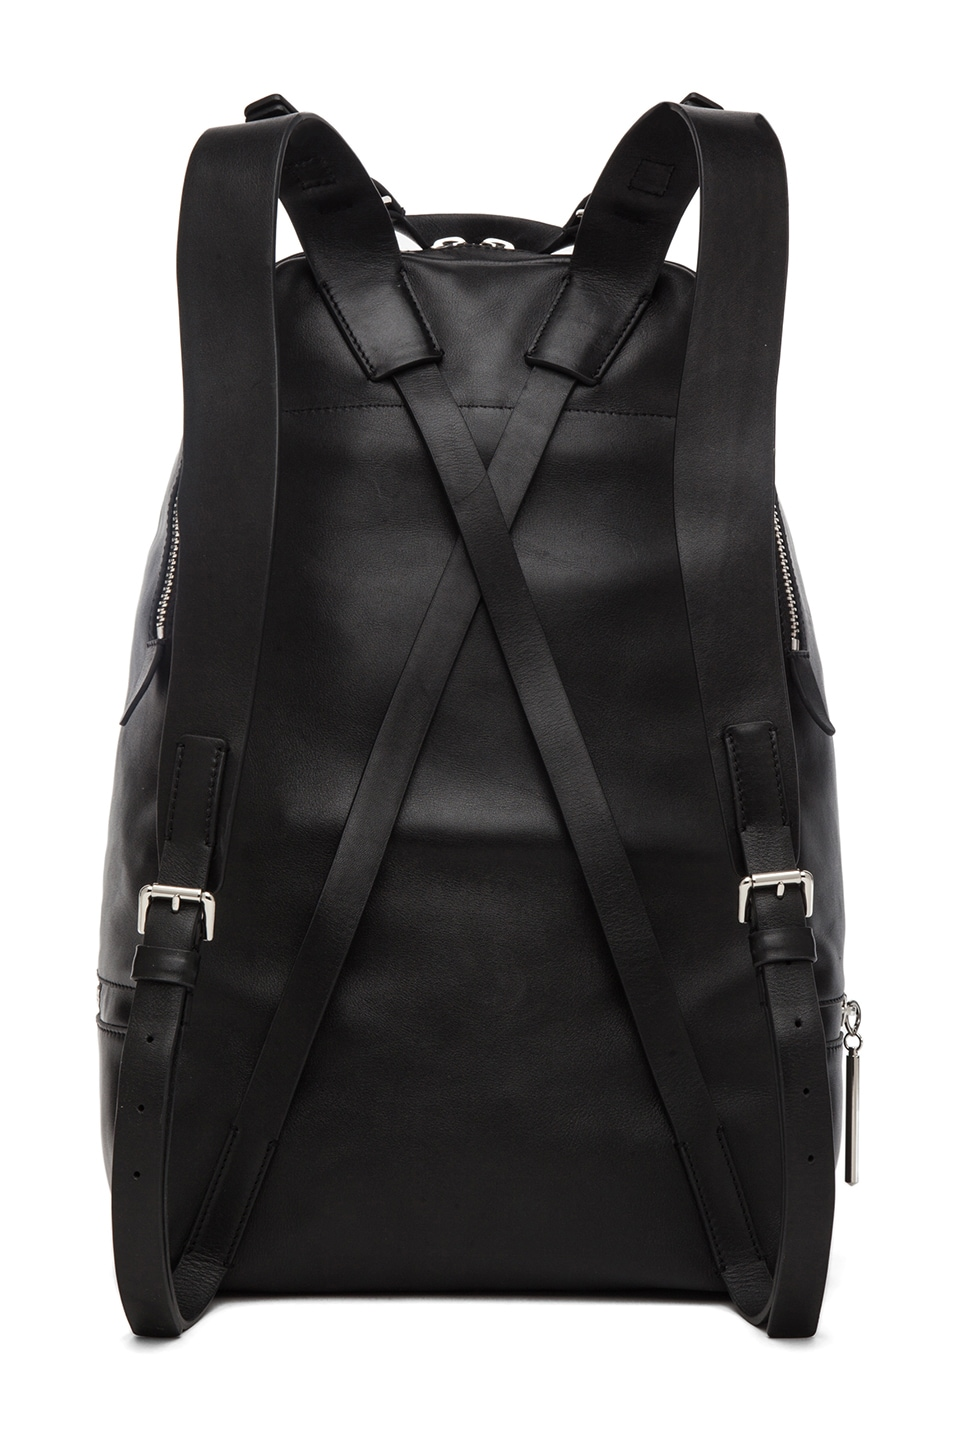 Image 2 of 3.1 phillip lim Zip Around Back Pack in Black